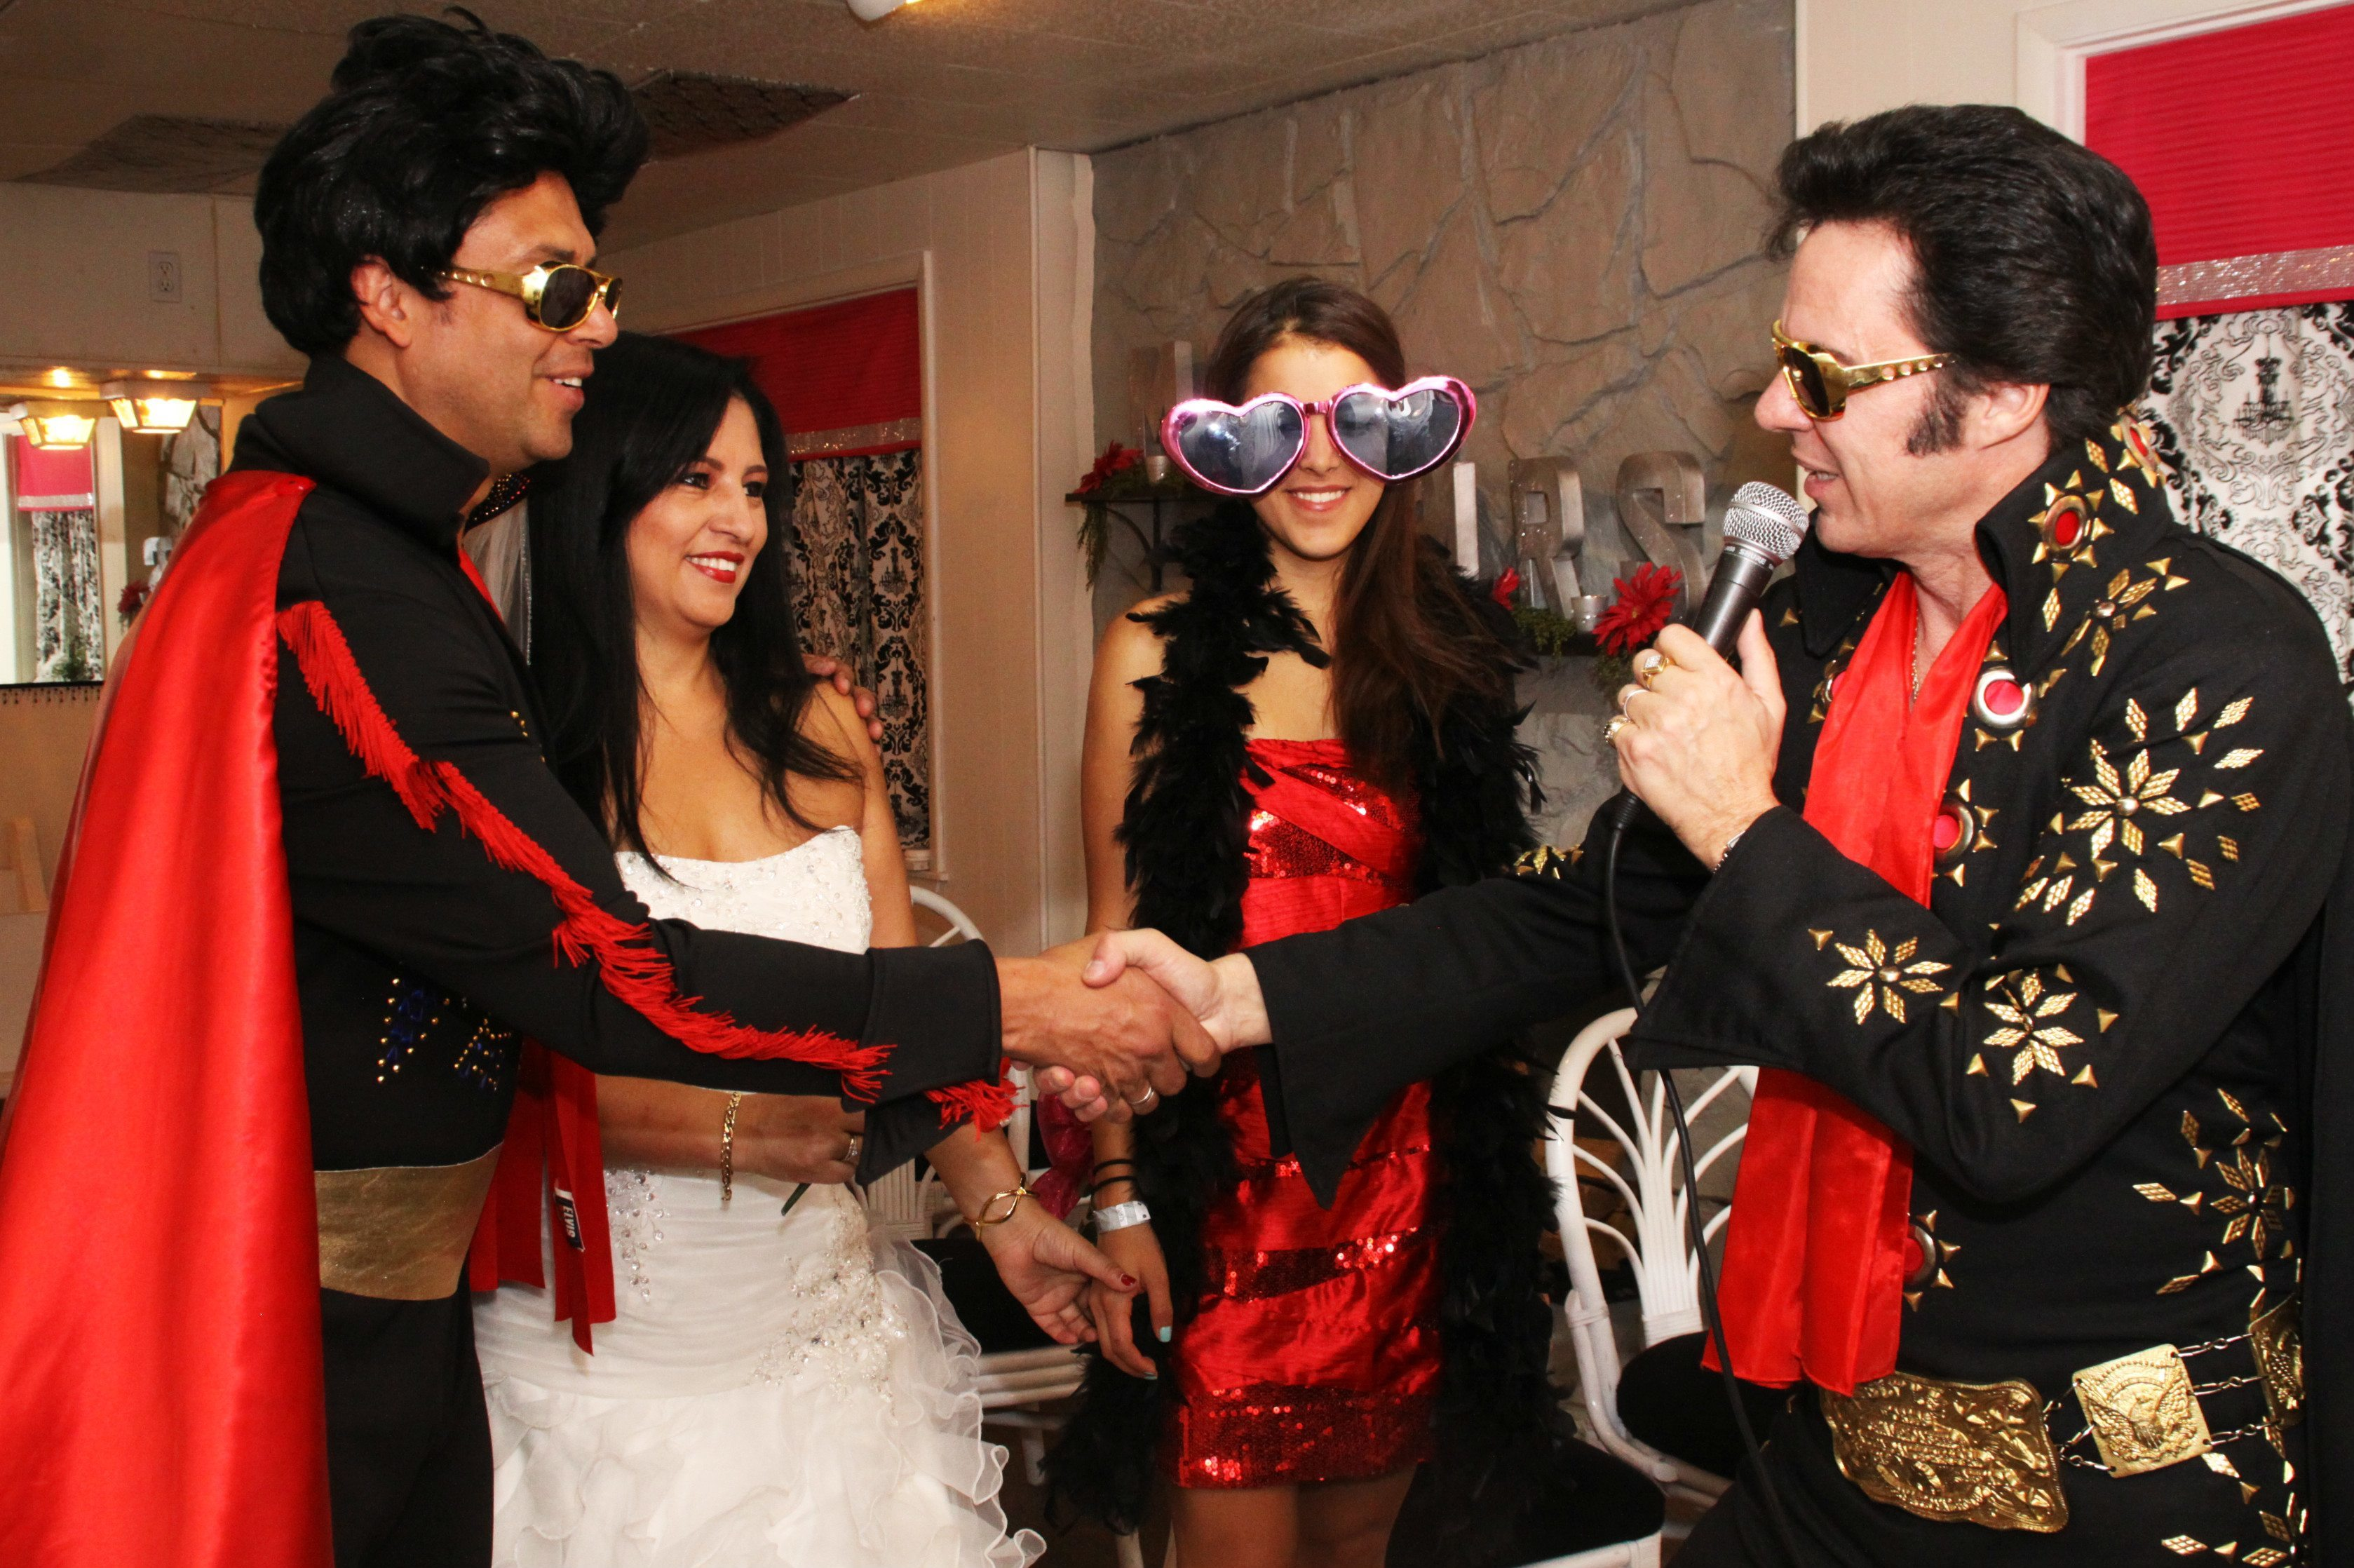 Elvis minister and Elvis groom shake hands with bride and bridesmaid in chapel.